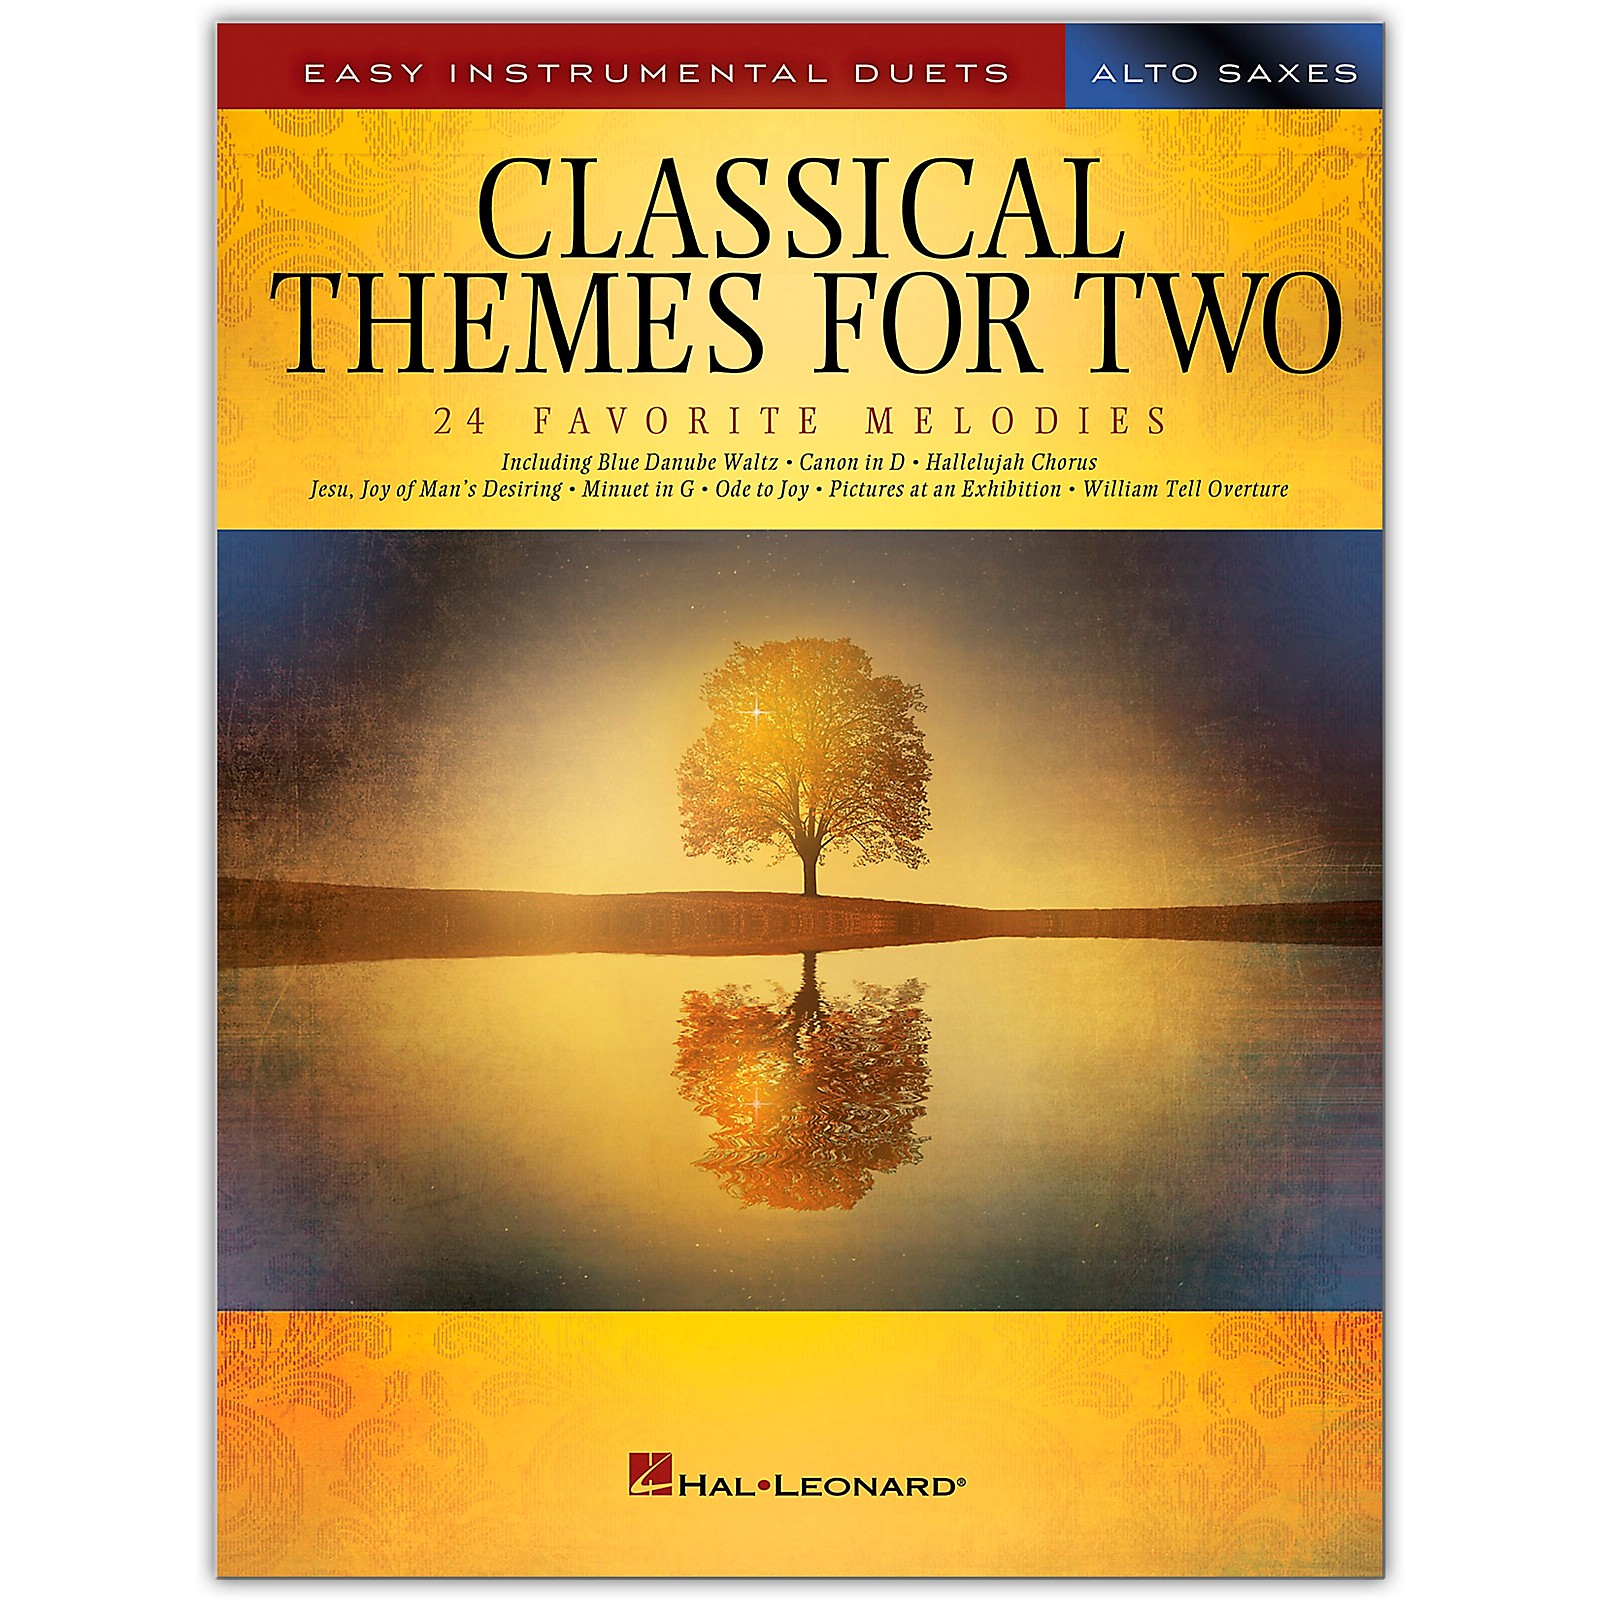 Hal Leonard Classical Themes for Two Alto Saxophones - Easy Instrumental Duets